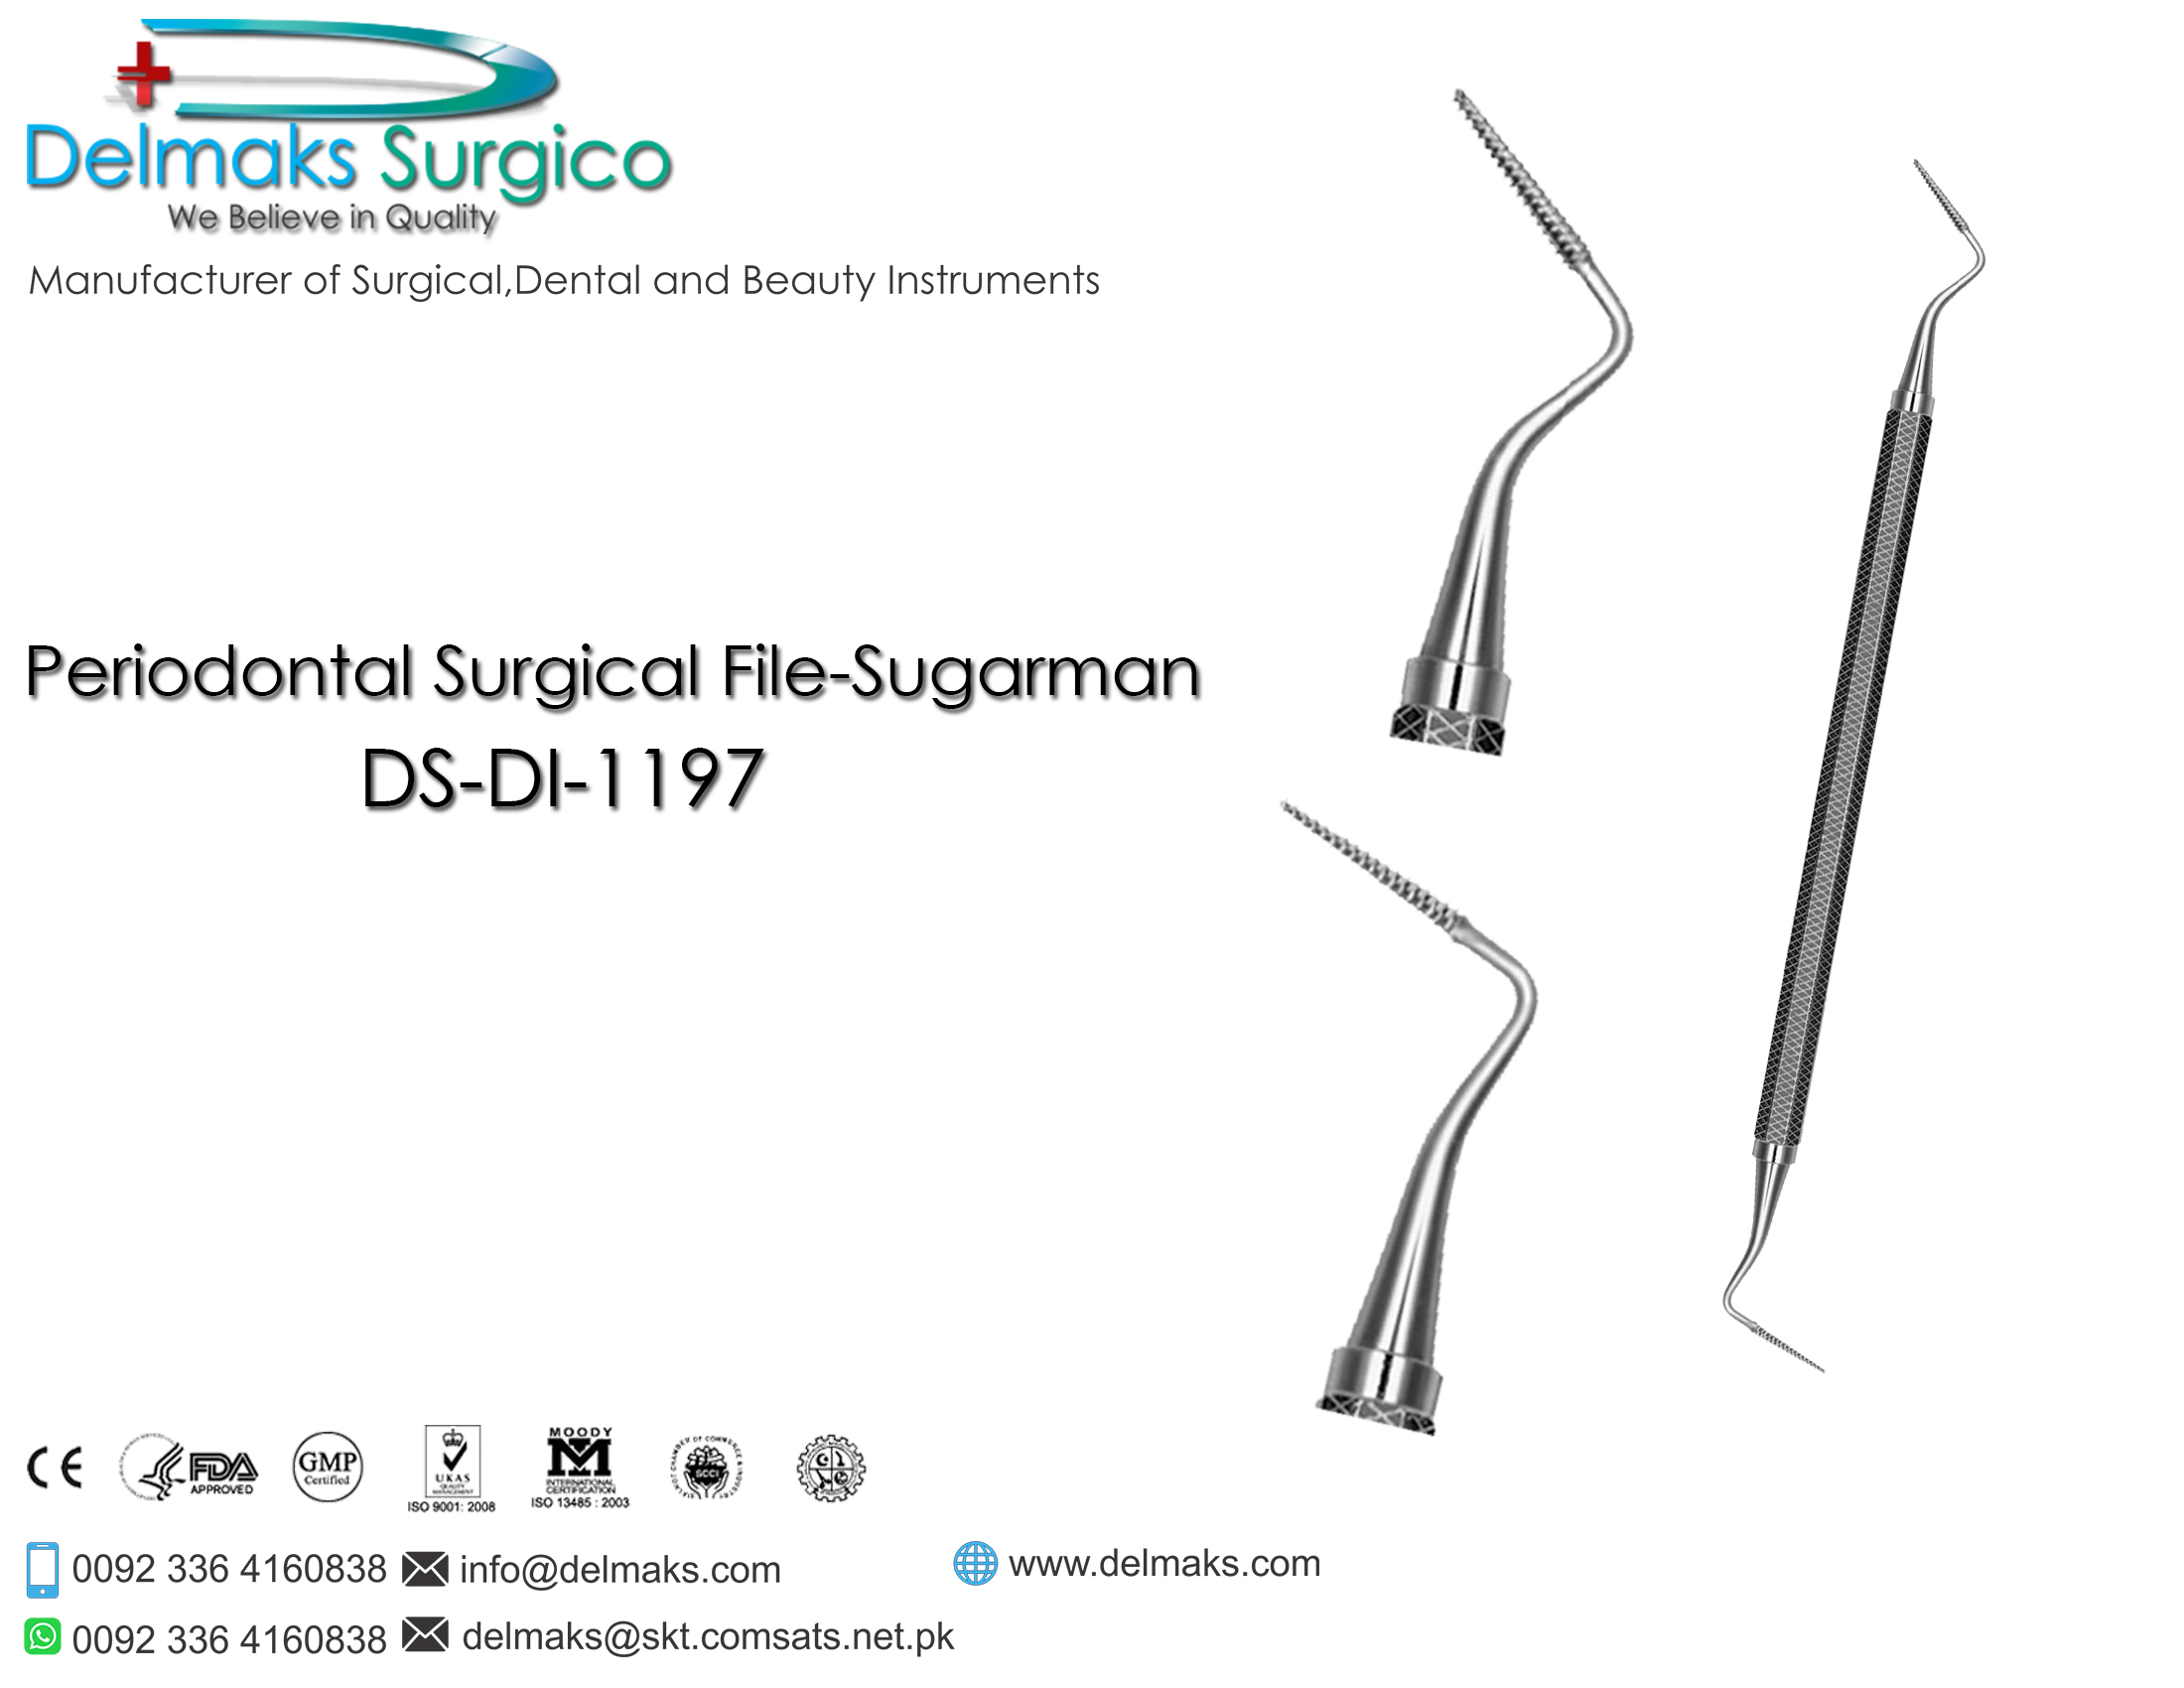 Periodontal Surgical File-Sugraman-Dental Instruments-Delmaks Surgico